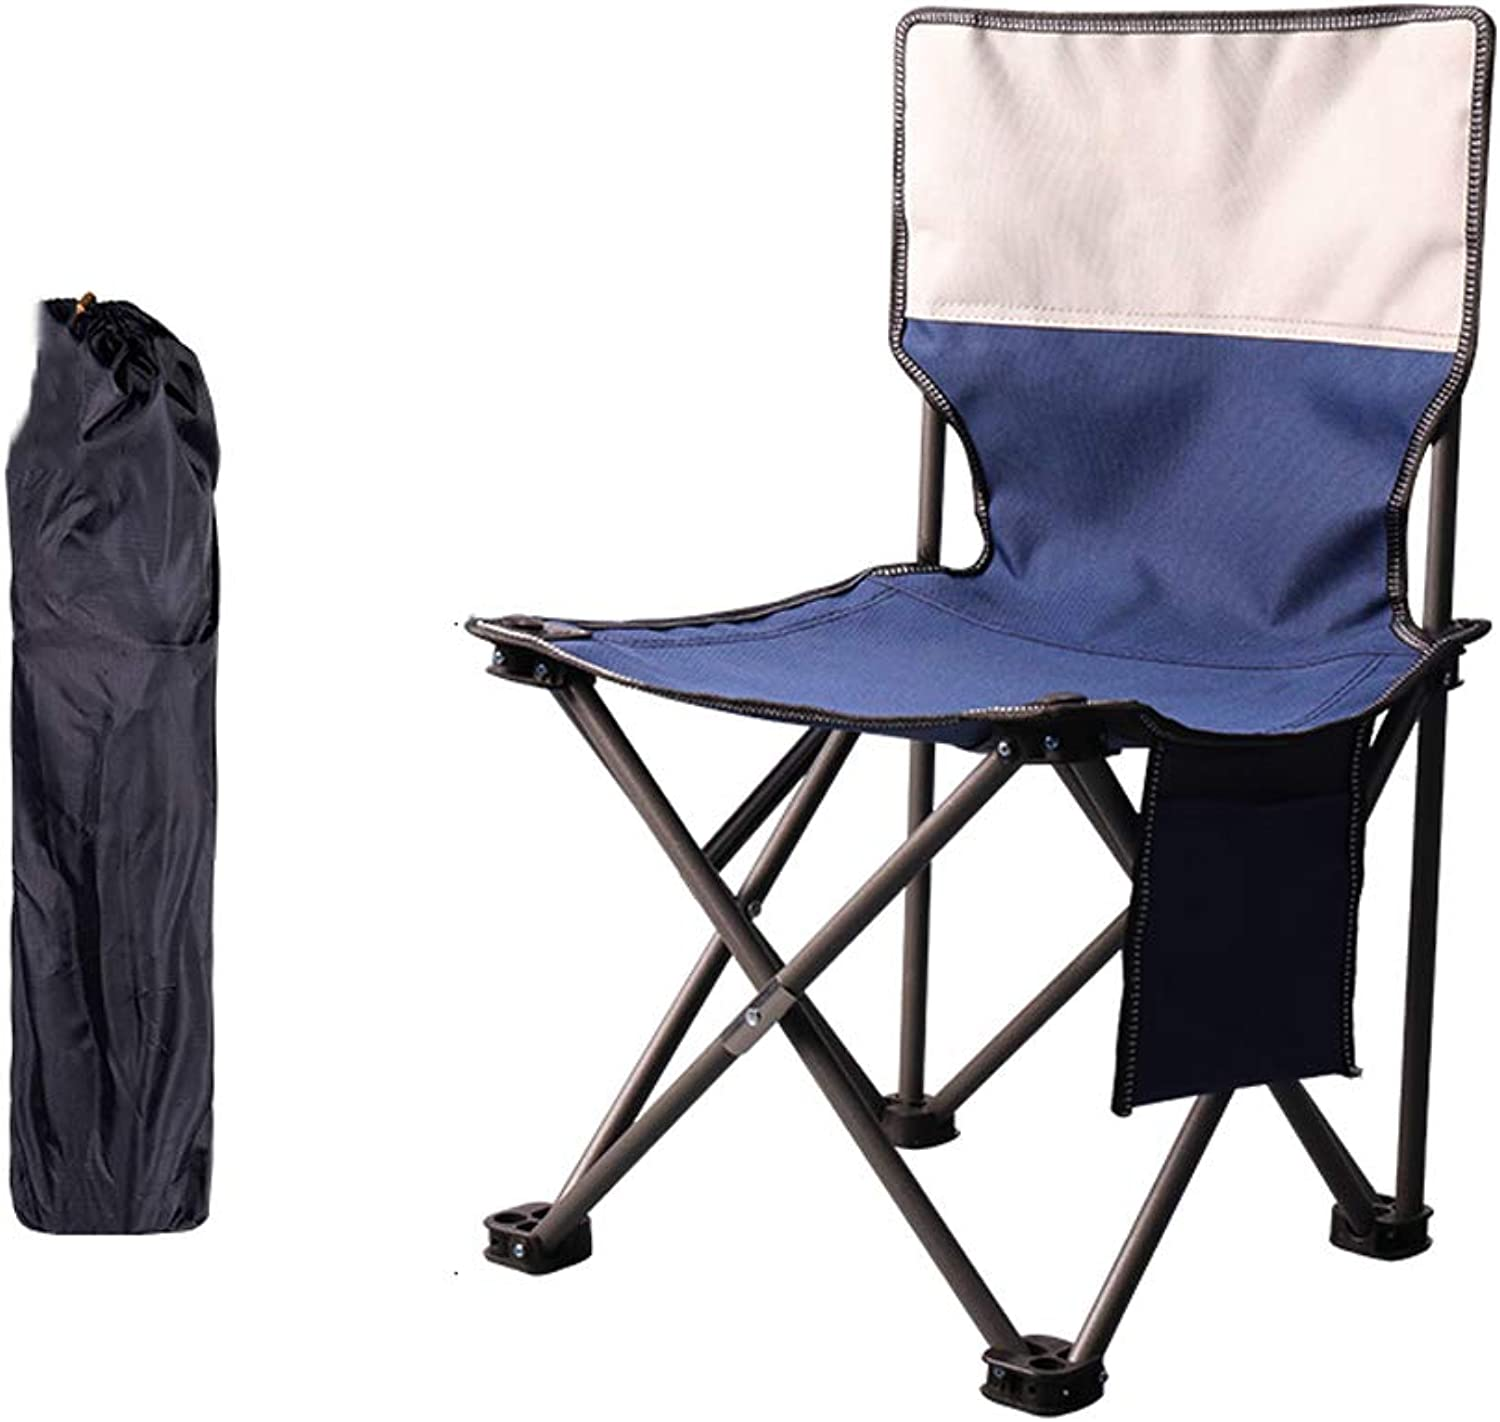 Folding CAMPING CHAIR ,Hiking Garden Indoor Outdoor Fishing SEAT Garden Festival -with Side Pouch